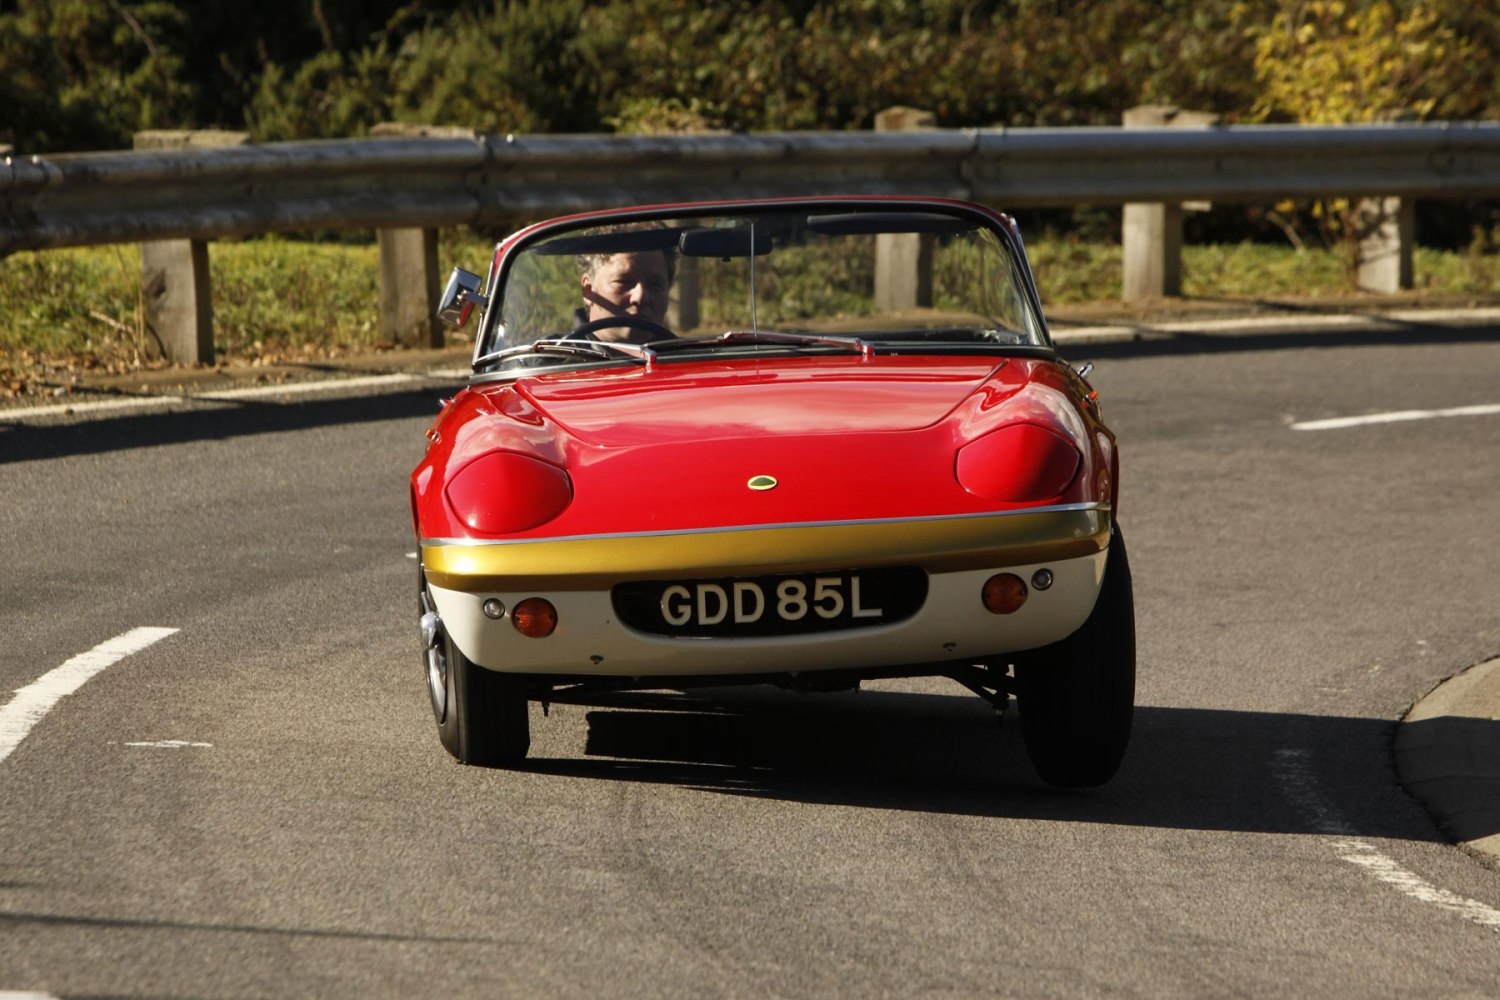 Roadster love: a brief history of the Mazda MX-5 | Motoring Research